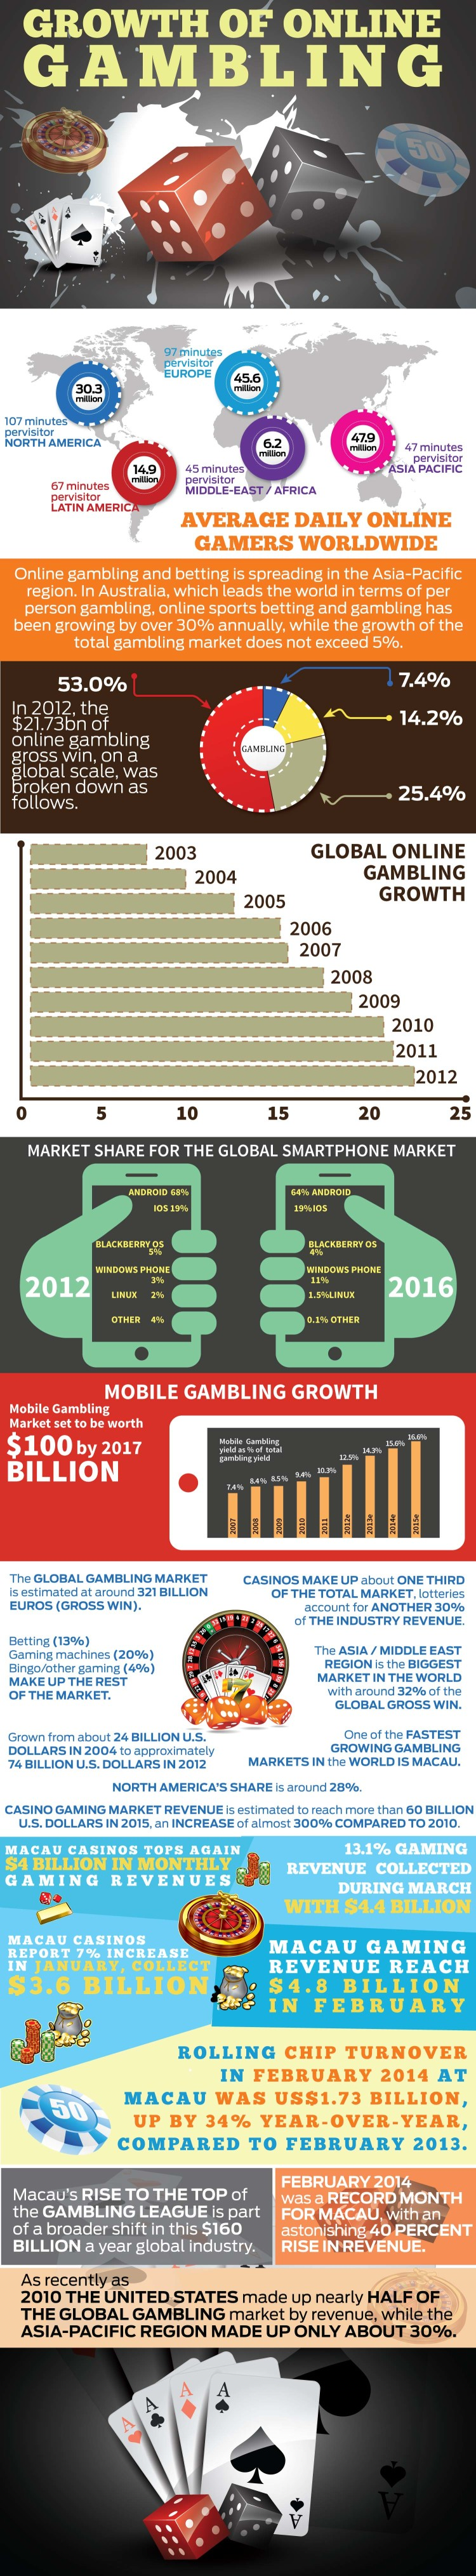 Online-Gambling-market-growth-infographic